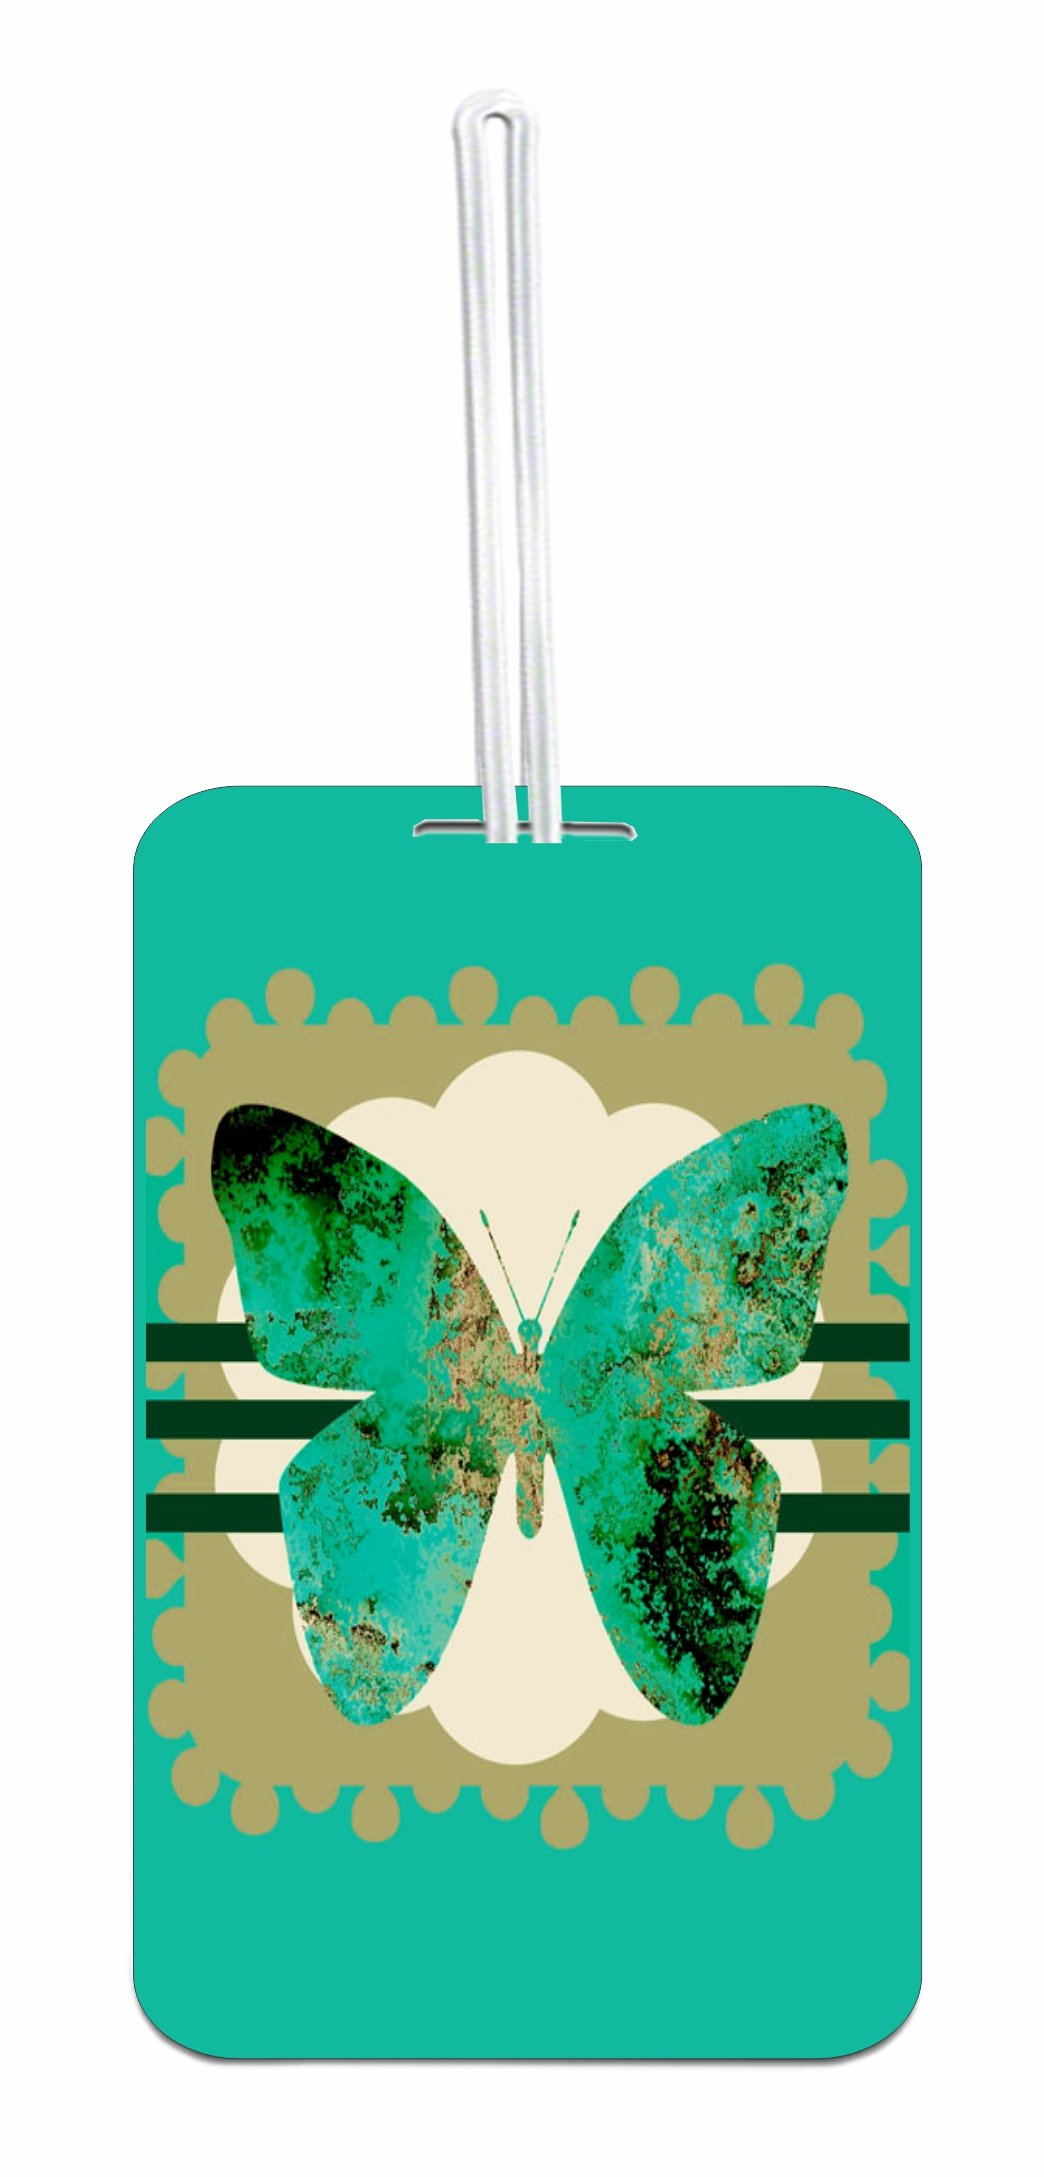 Grunge Butterfly Hard Plastic Luggage Tag with Personalized Back by Jacks Outlet (Image #1)